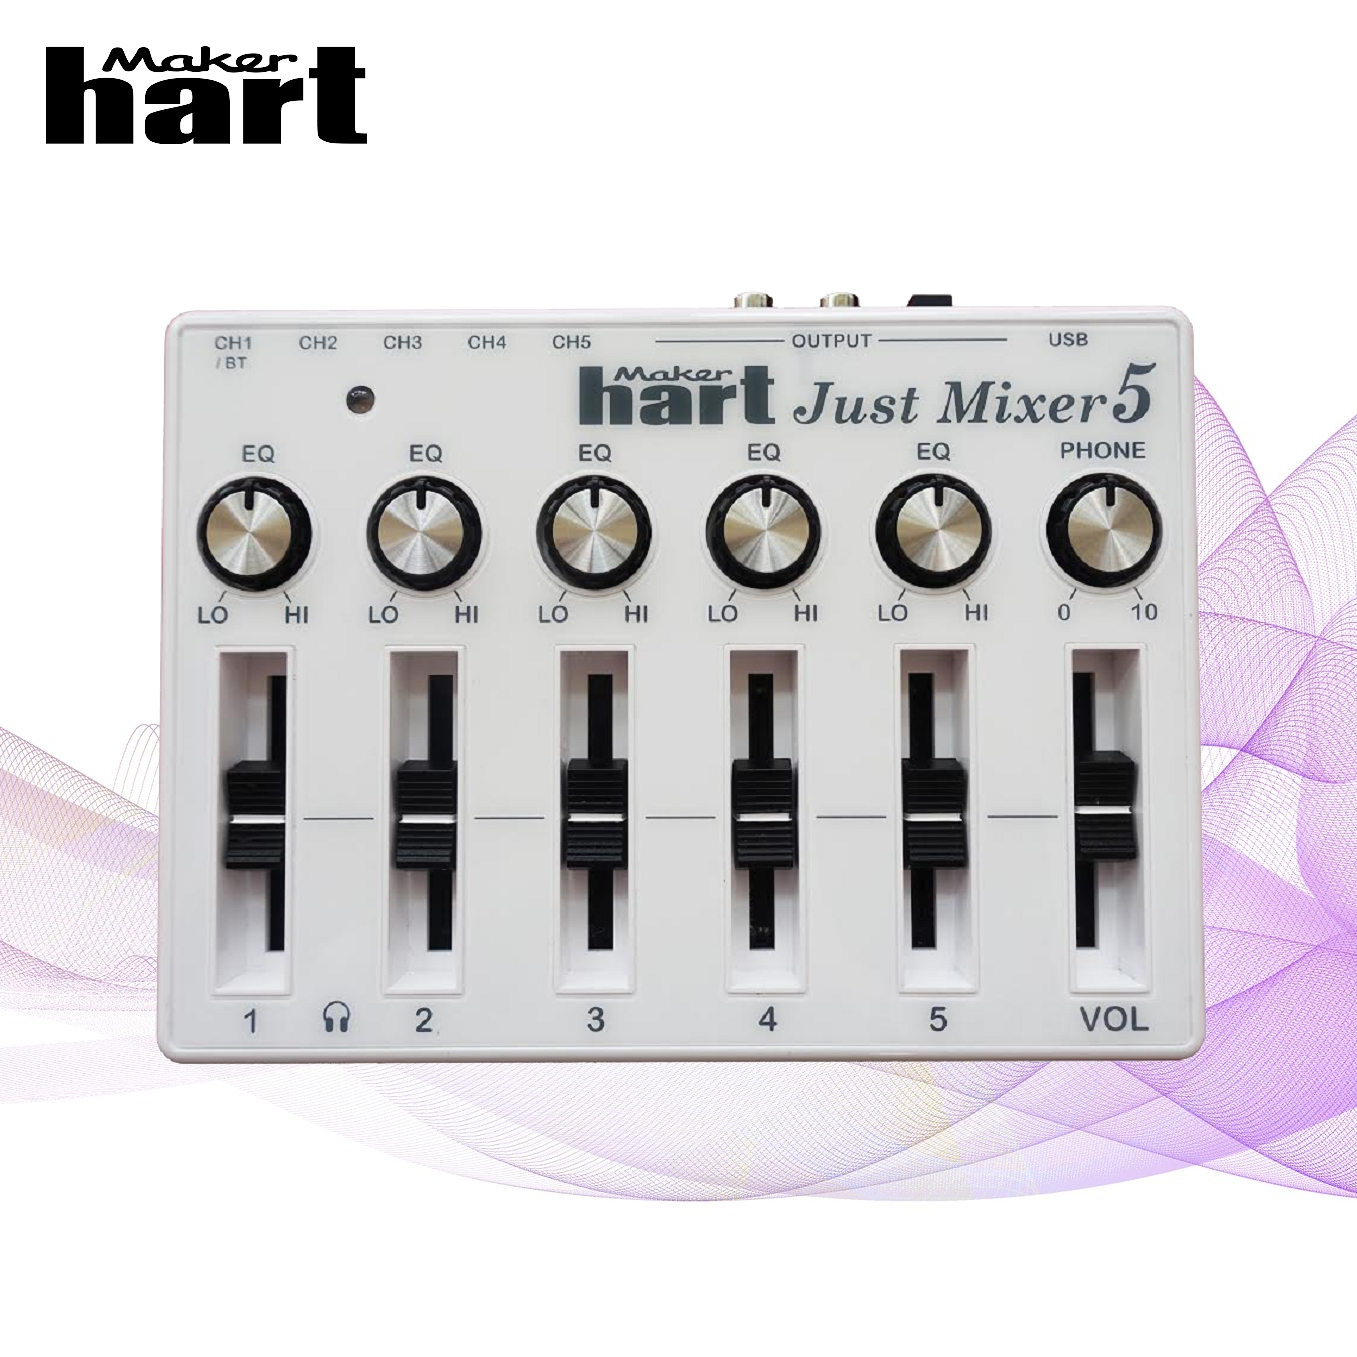 Just Mixer M 220-240V 3.5mm mini microphone mixer